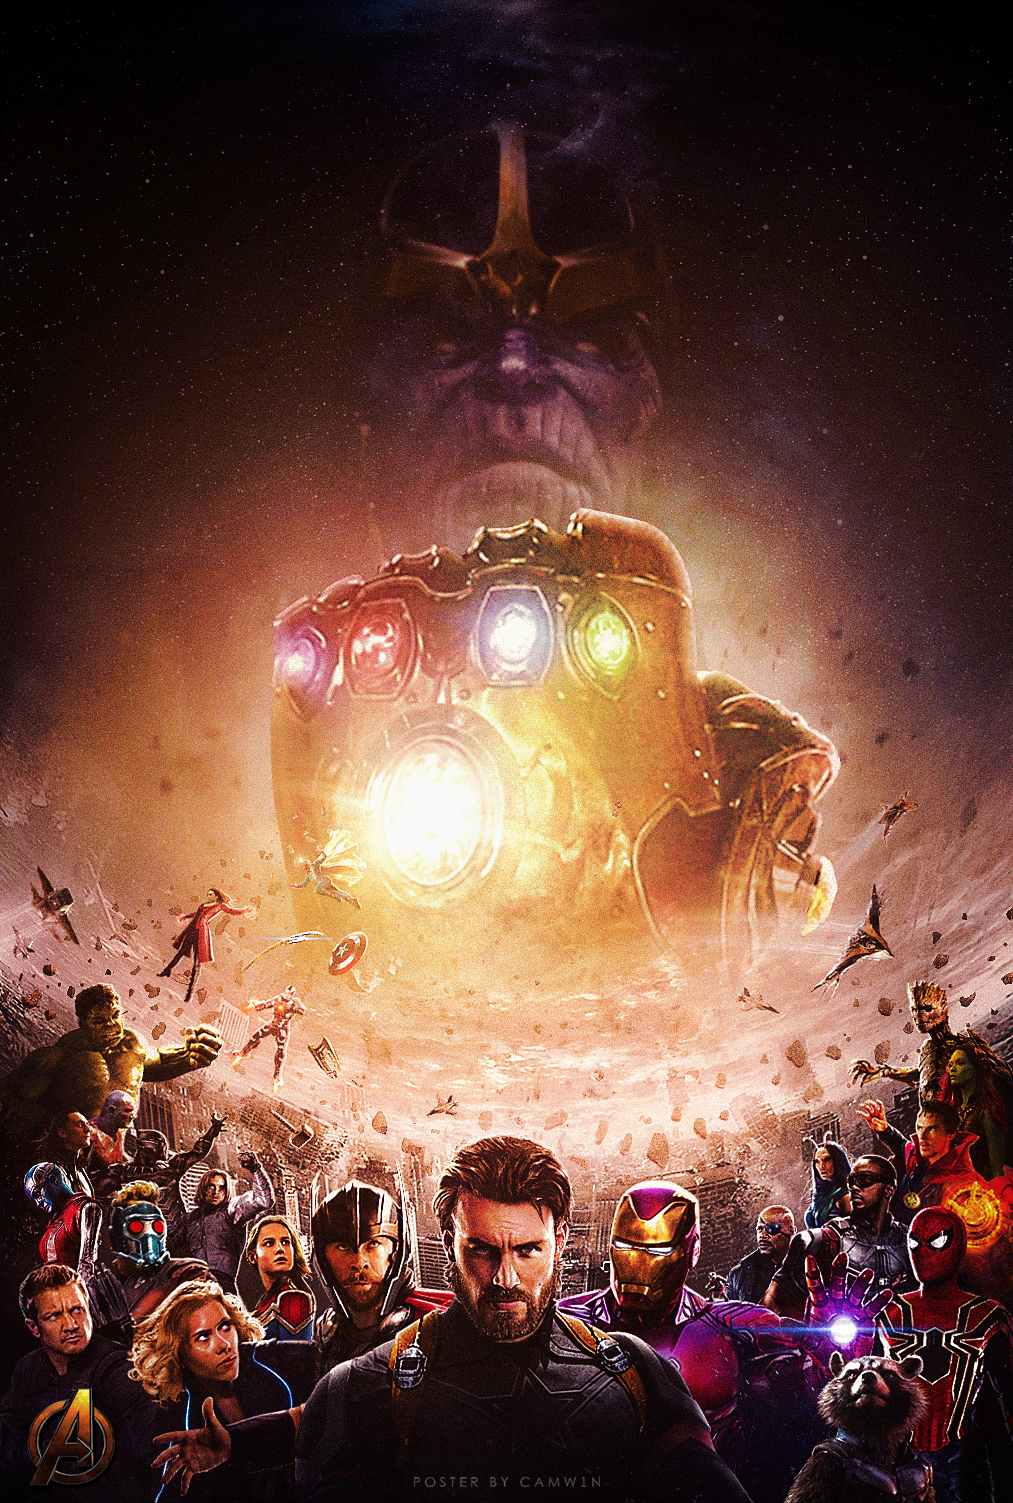 avengers__infinity_war__2018____poster_by_camw1n-dbhwbei.png